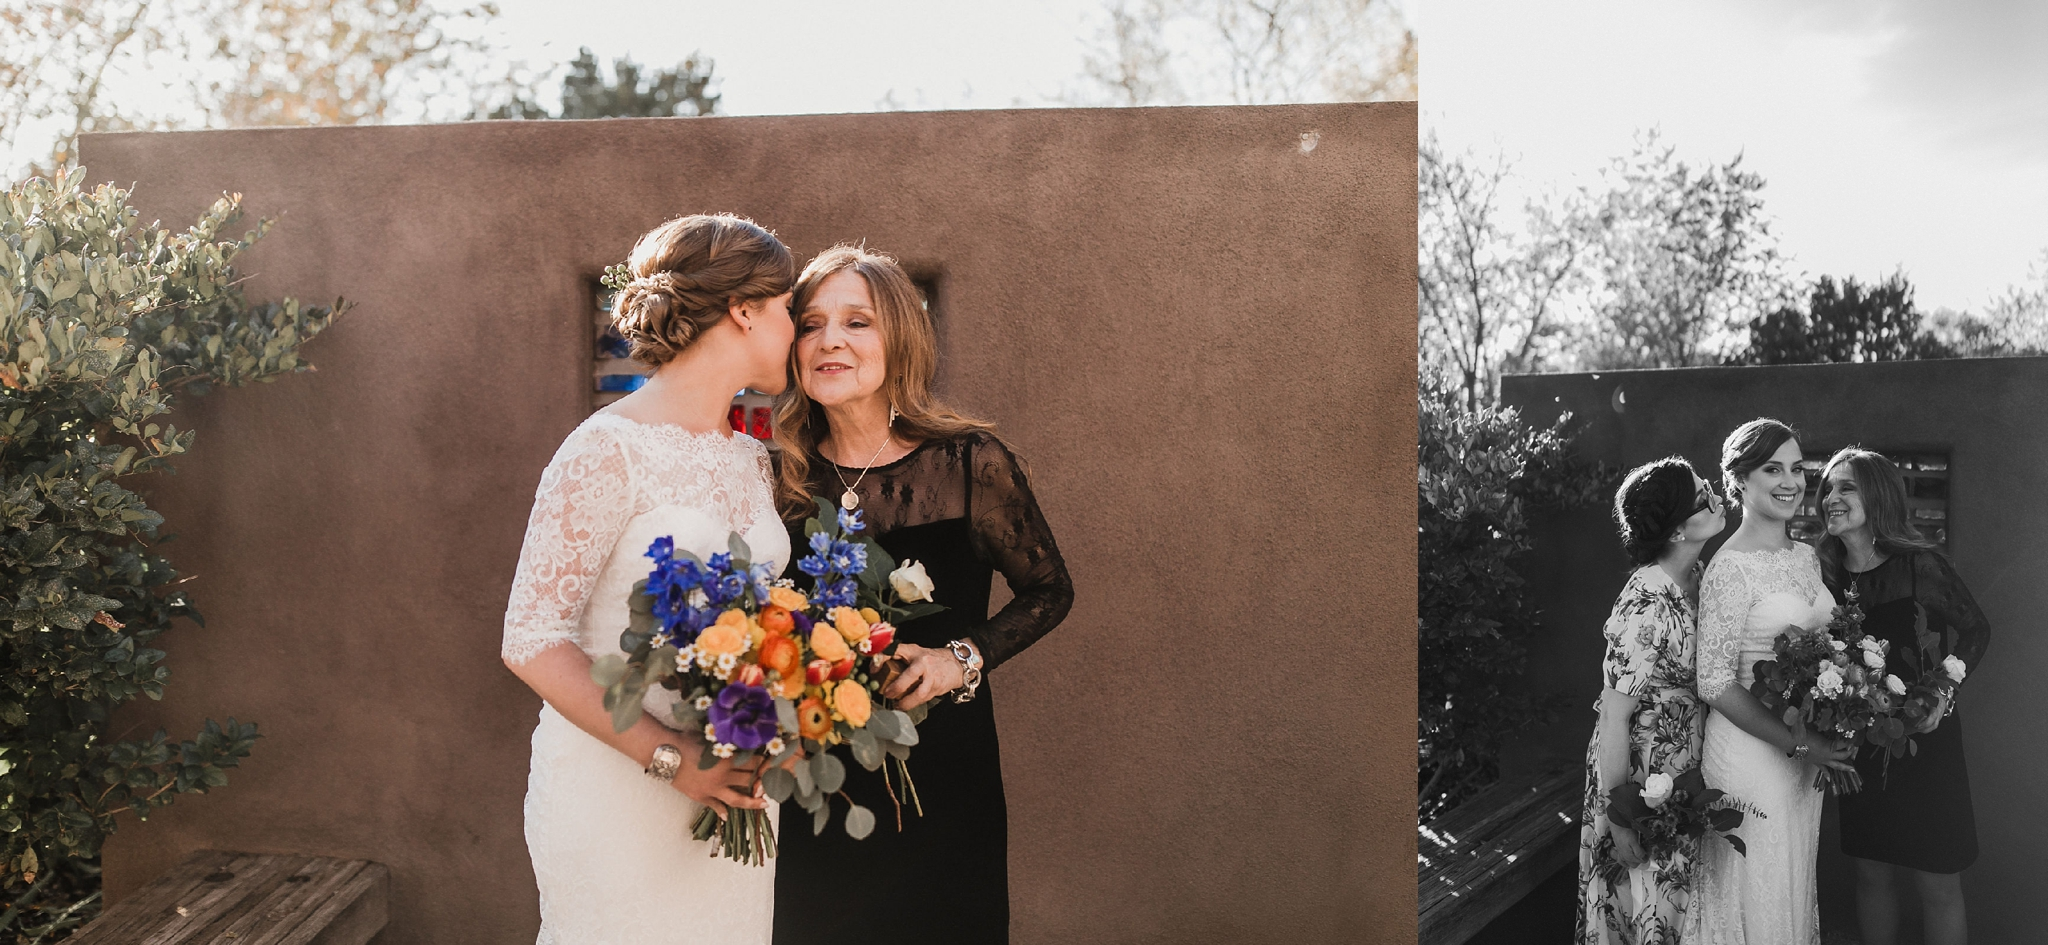 Alicia+lucia+photography+-+albuquerque+wedding+photographer+-+santa+fe+wedding+photography+-+new+mexico+wedding+photographer+-+albuquerque+wedding+-+sarabande+bed+breakfast+-+bed+and+breakfast+wedding_0096.jpg